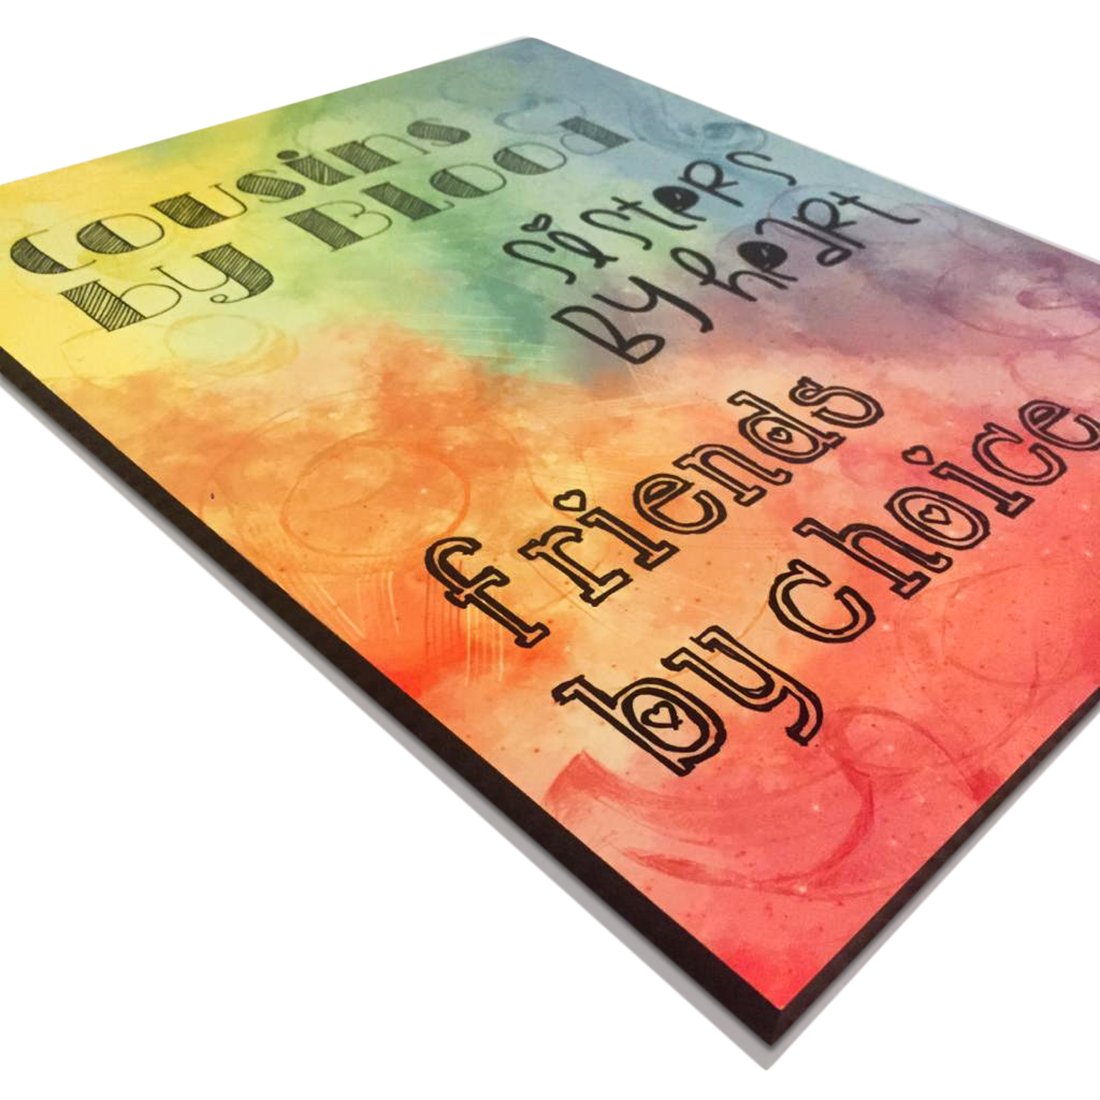 """""""COUSINS BY BLOOD, SISTERS BY HEART, FRIENDS BY CHOICE"""" Home decor, wall art plaque, gift for cousin, 11 x 8.8 x .35, decorative sign with quotes and sayings, rainbow, gloss, present for cousin. """"COUSINS BY BLOOD CATCH&THROW."""